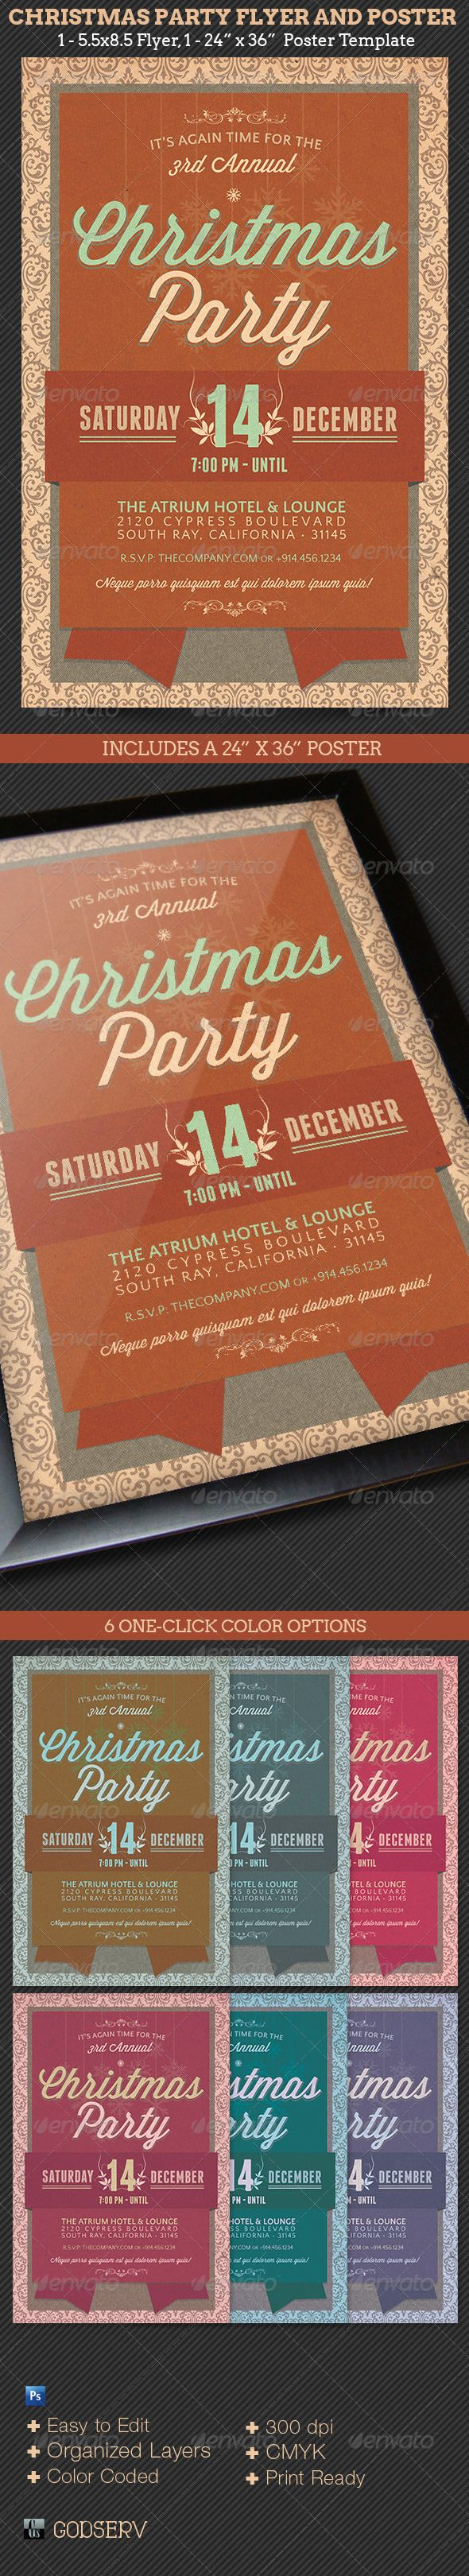 best images about best photoshop template bundles christmas party flyer poster template